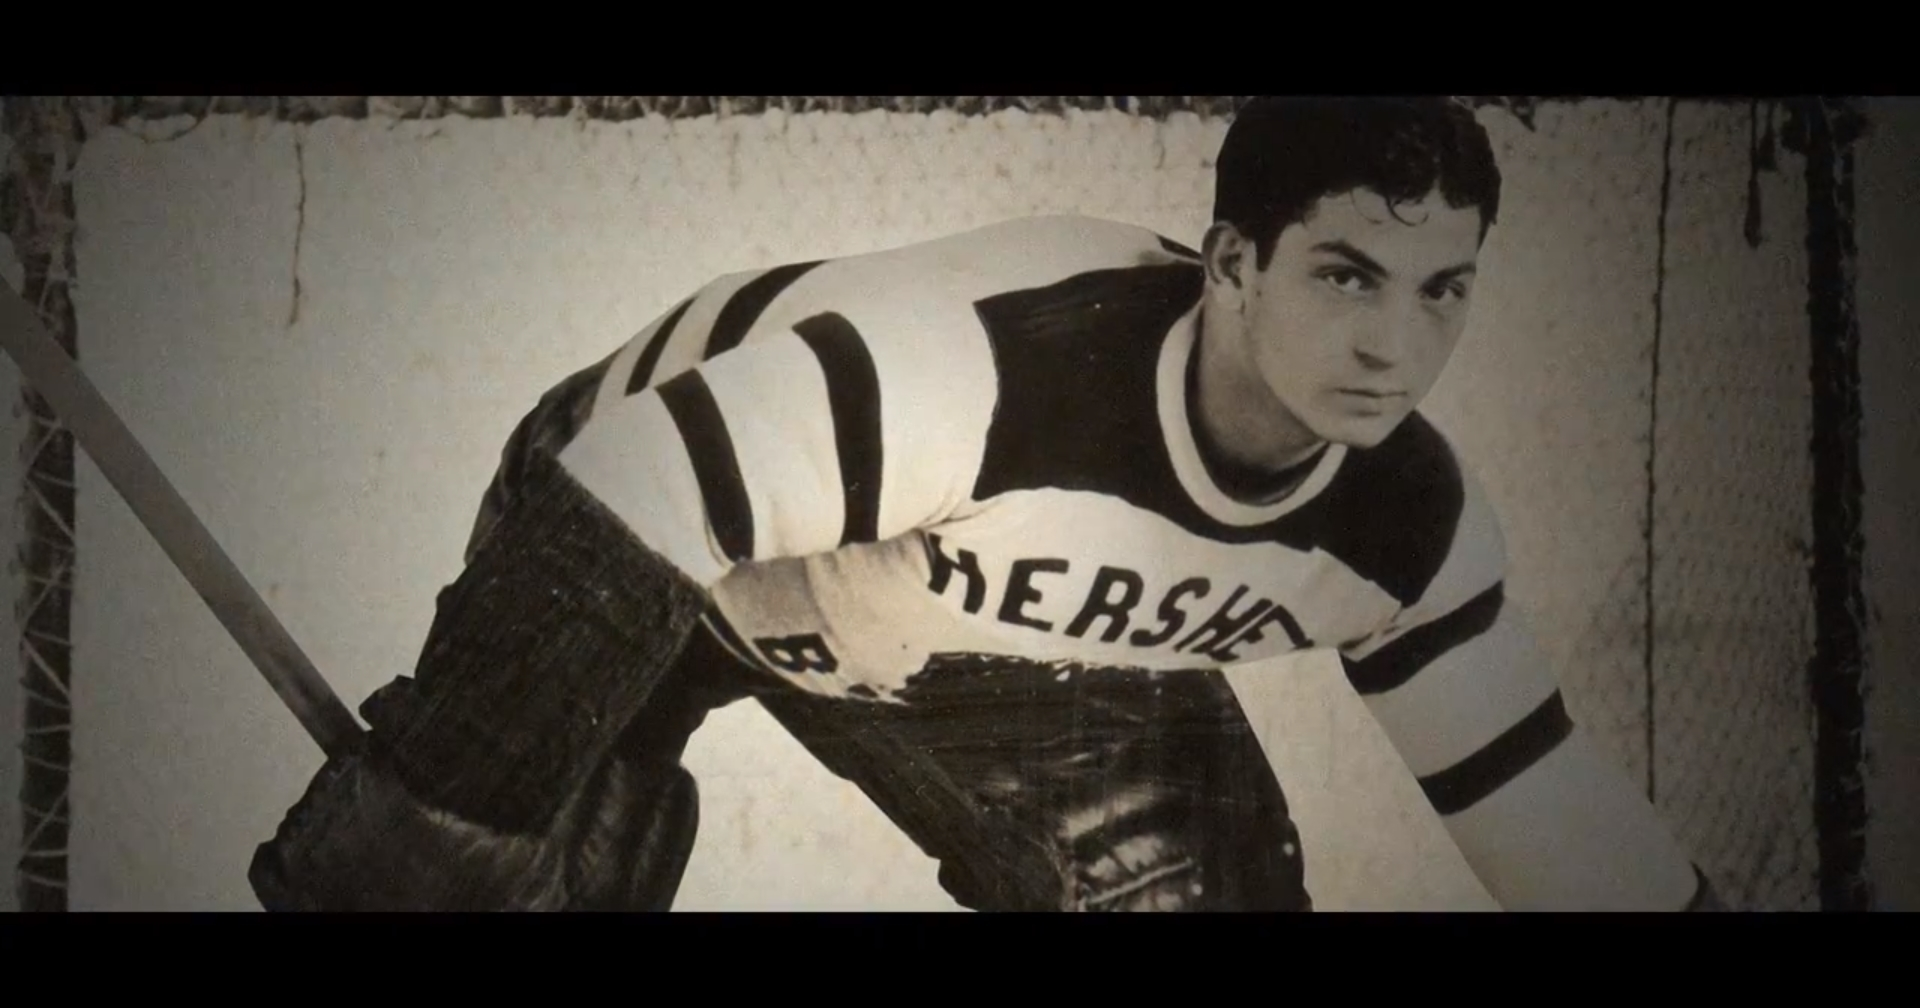 Tickets still available for Hershey Bears documentary premiere tonight!